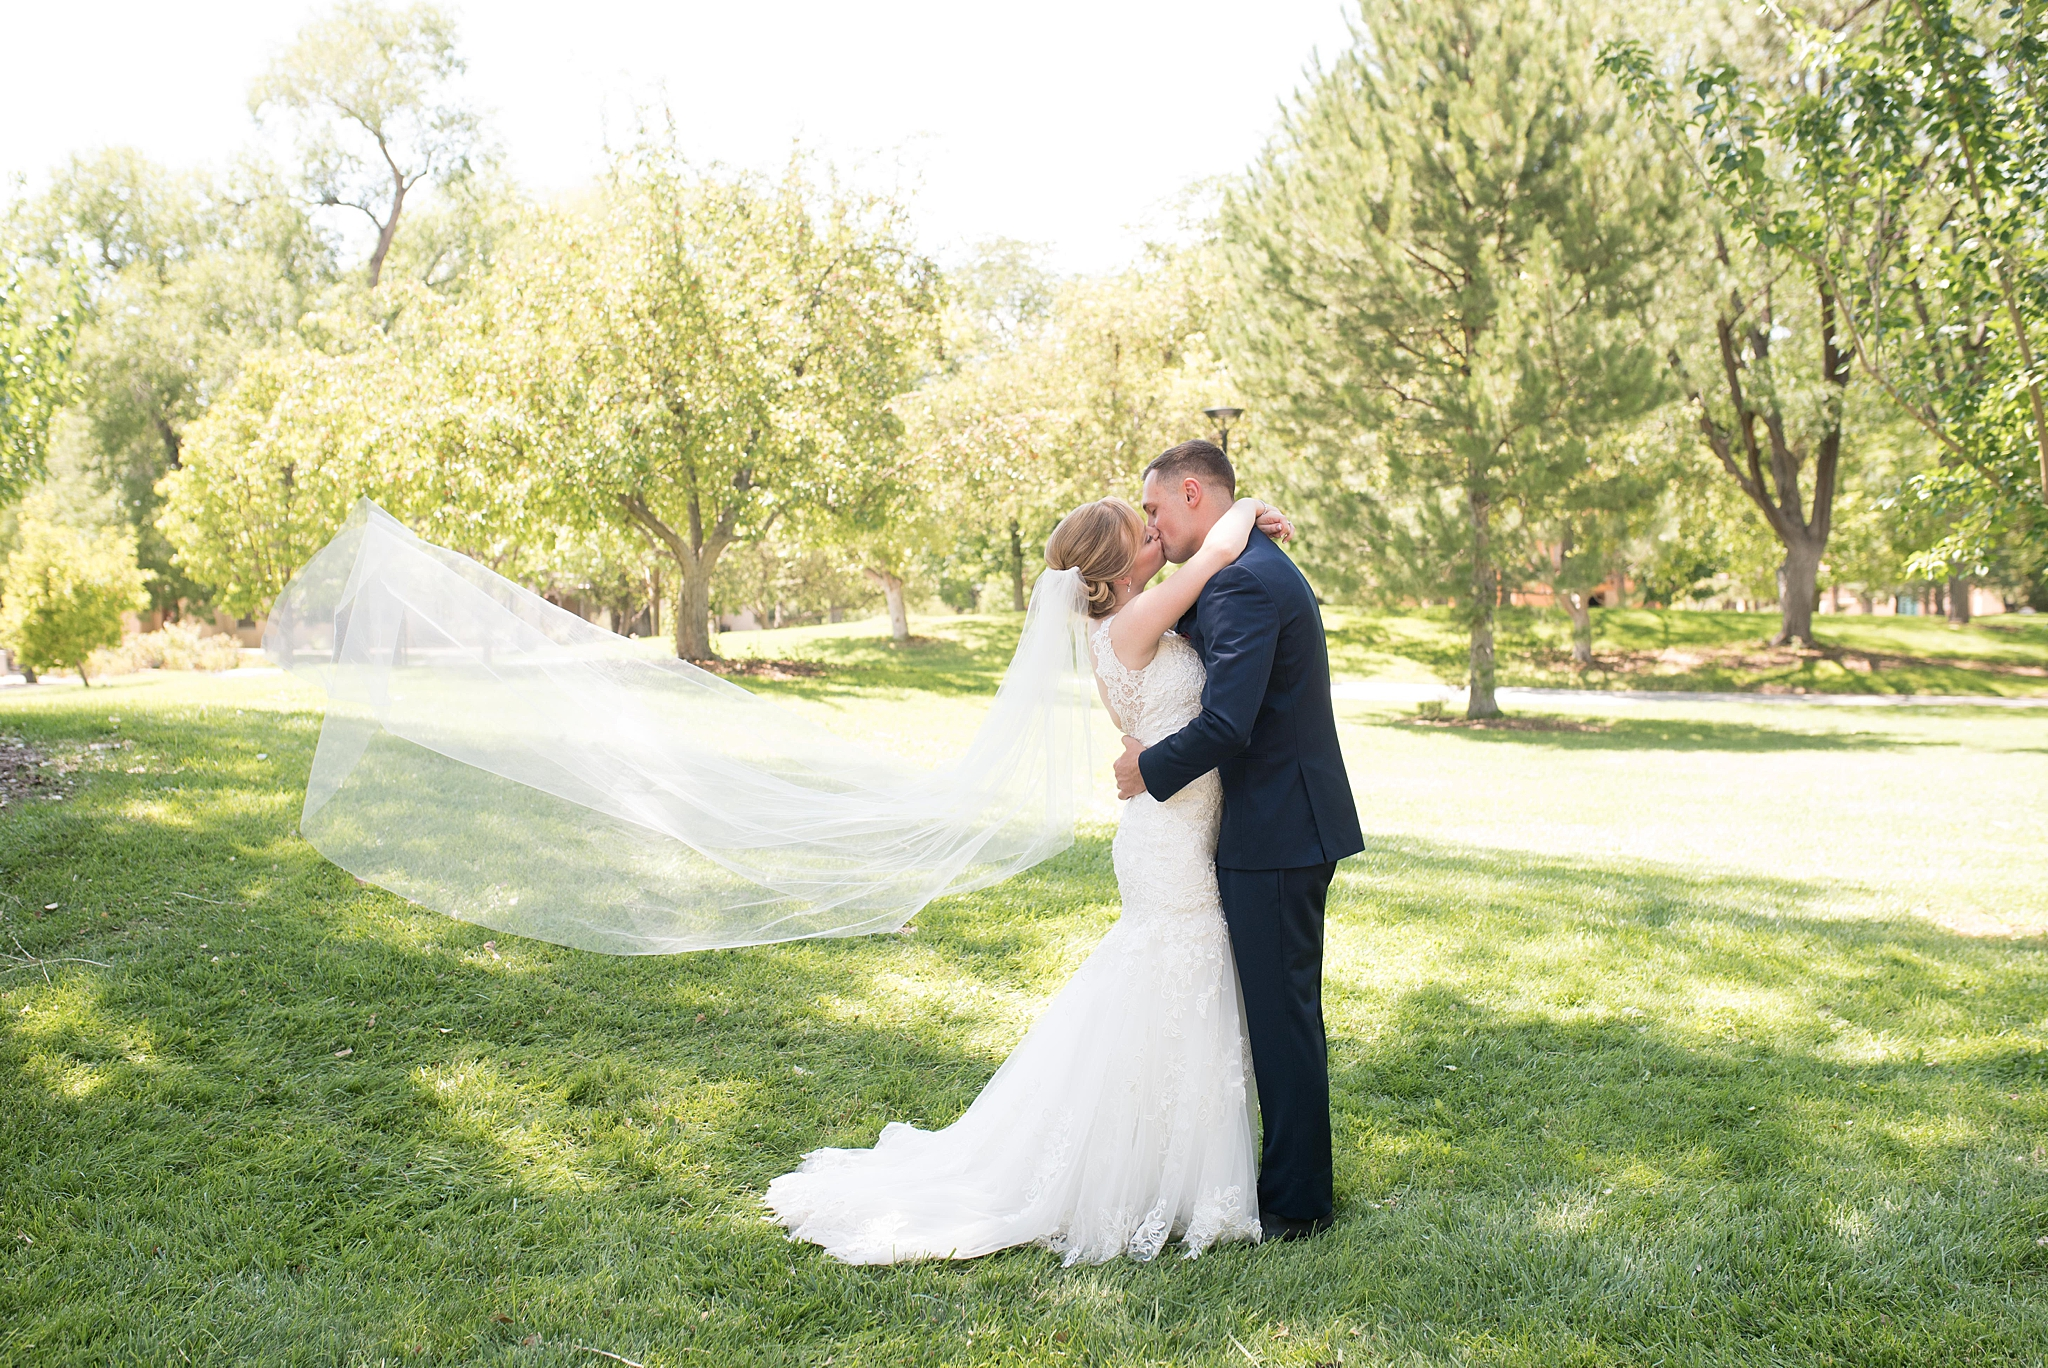 Wedding dress from Ann Matthews, jewelry by helzberg diamonds, suits by suits unlimited, hotel parque central wedding photographed by albuquerque wedding photographer kayla kitts photography